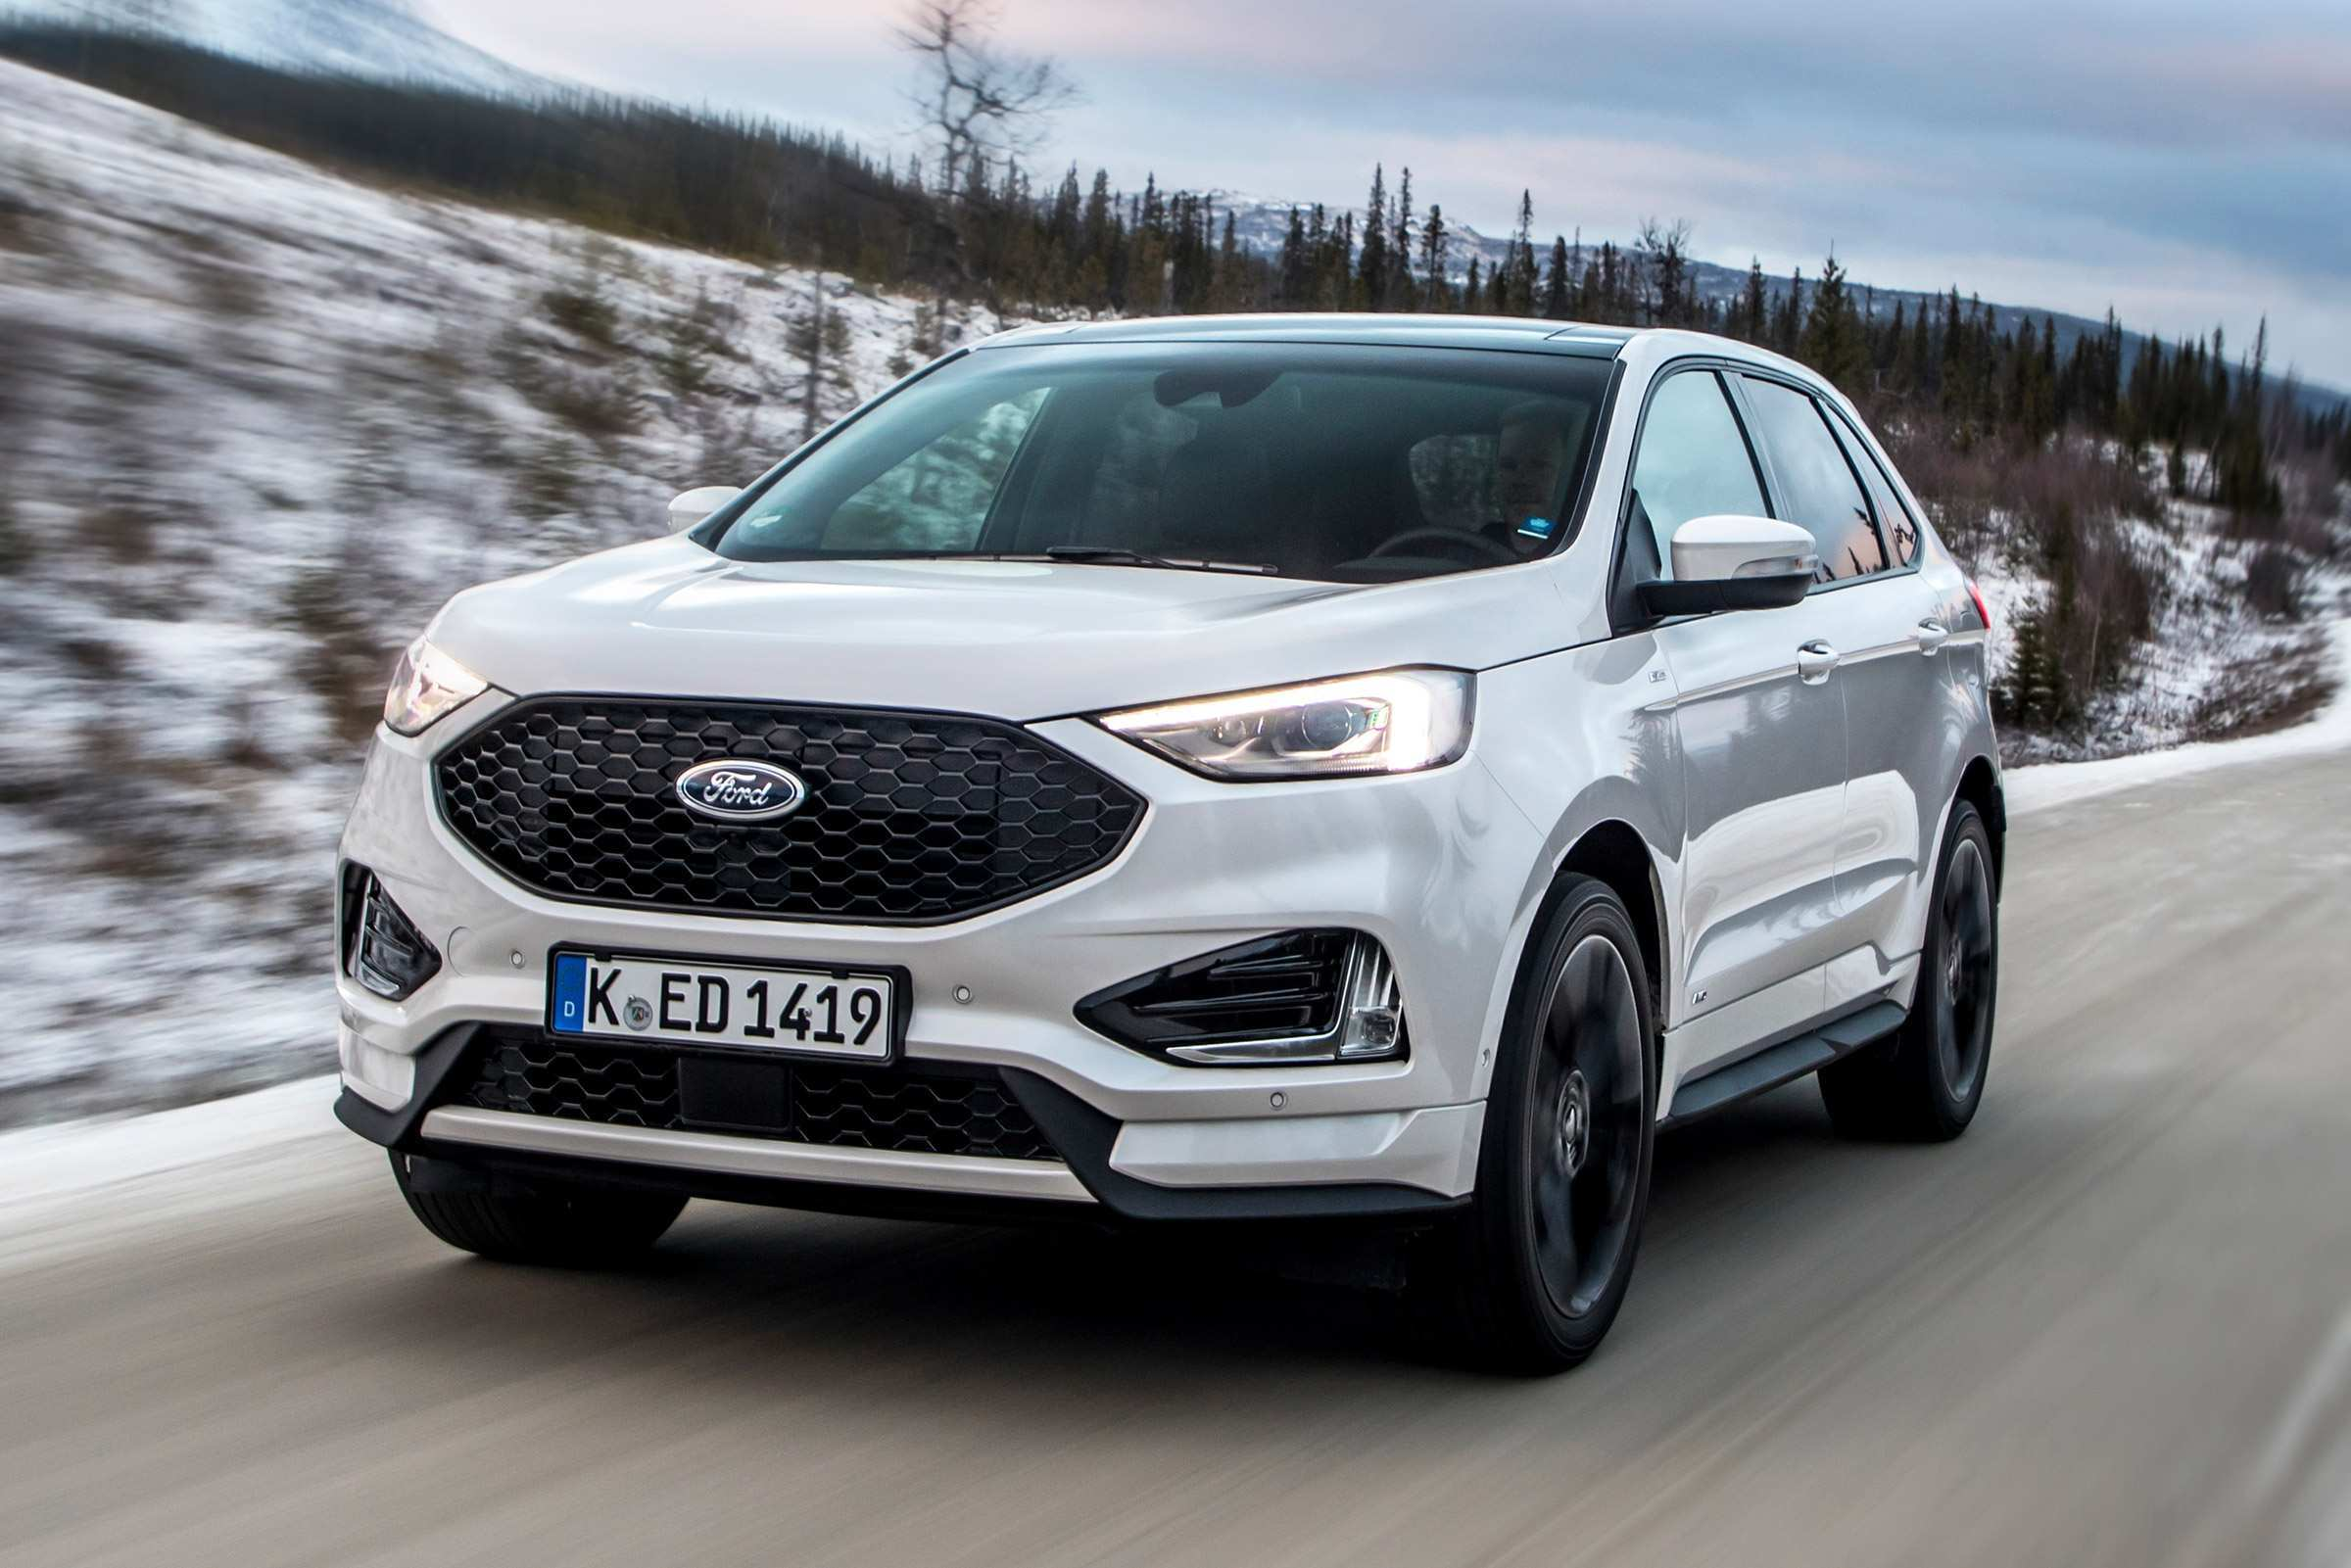 44 The 2019 Ford Edge New Design Photos